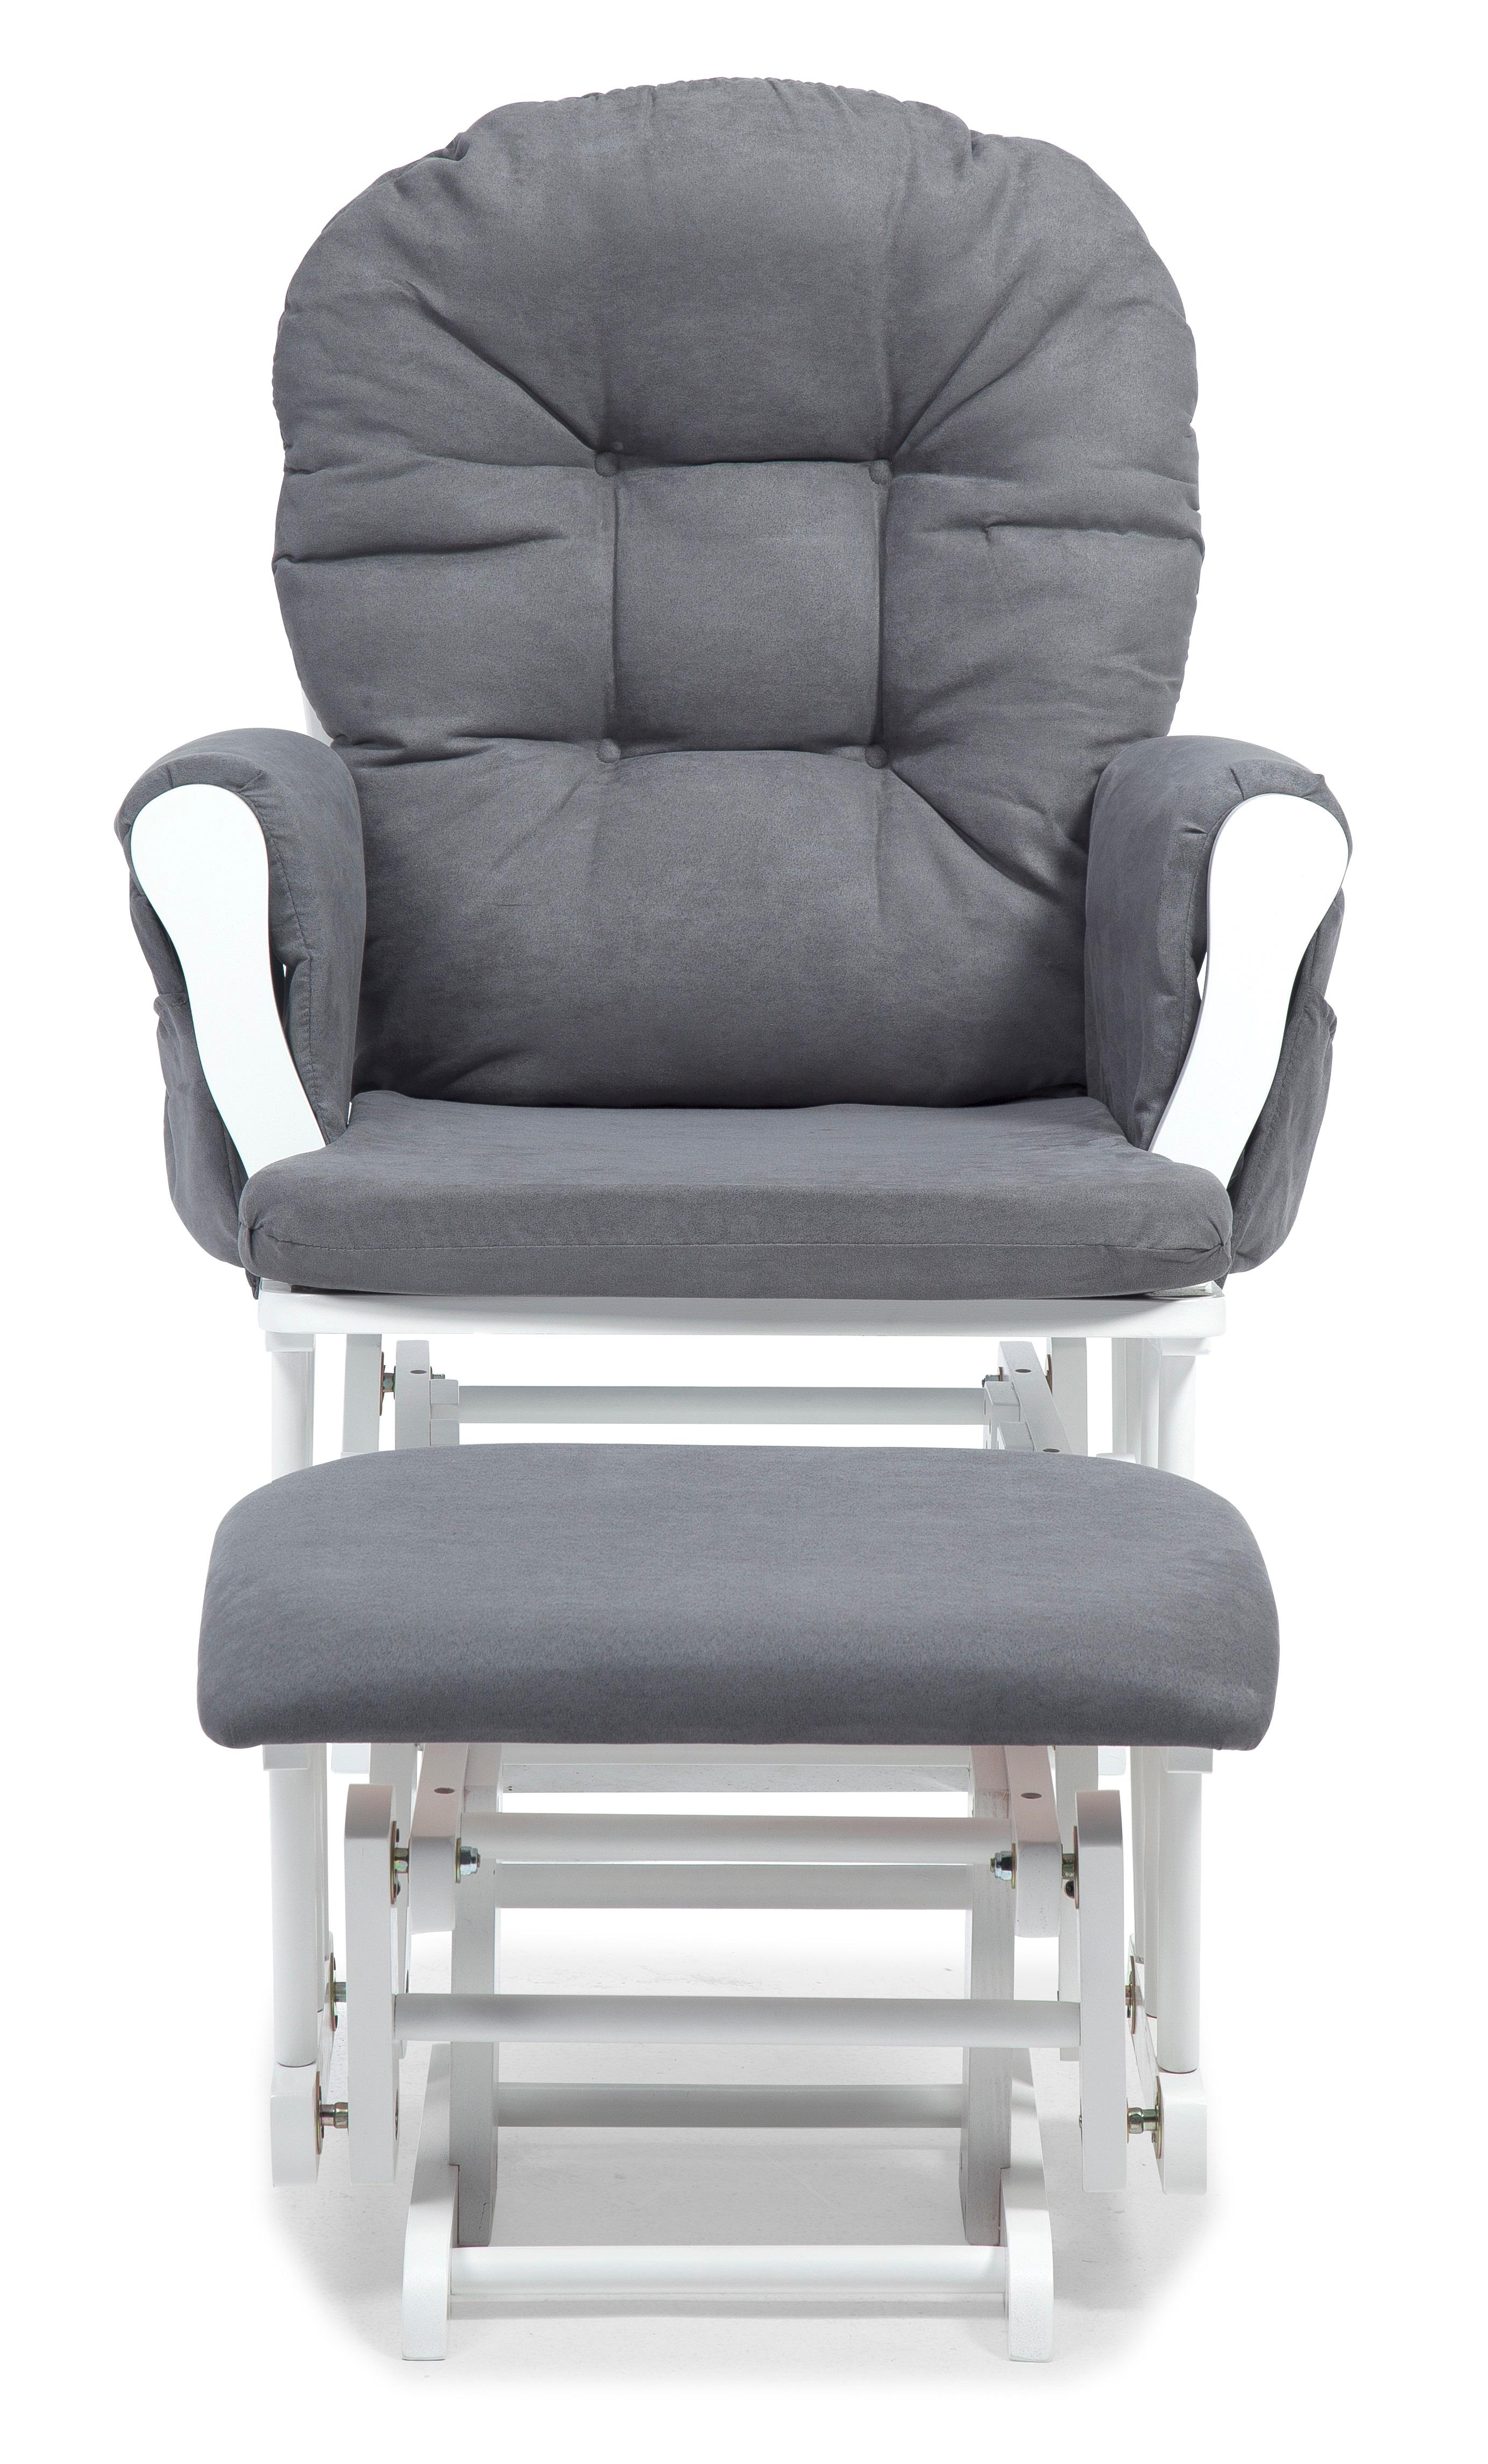 Stork craft hoop glider and ottoman - View Larger